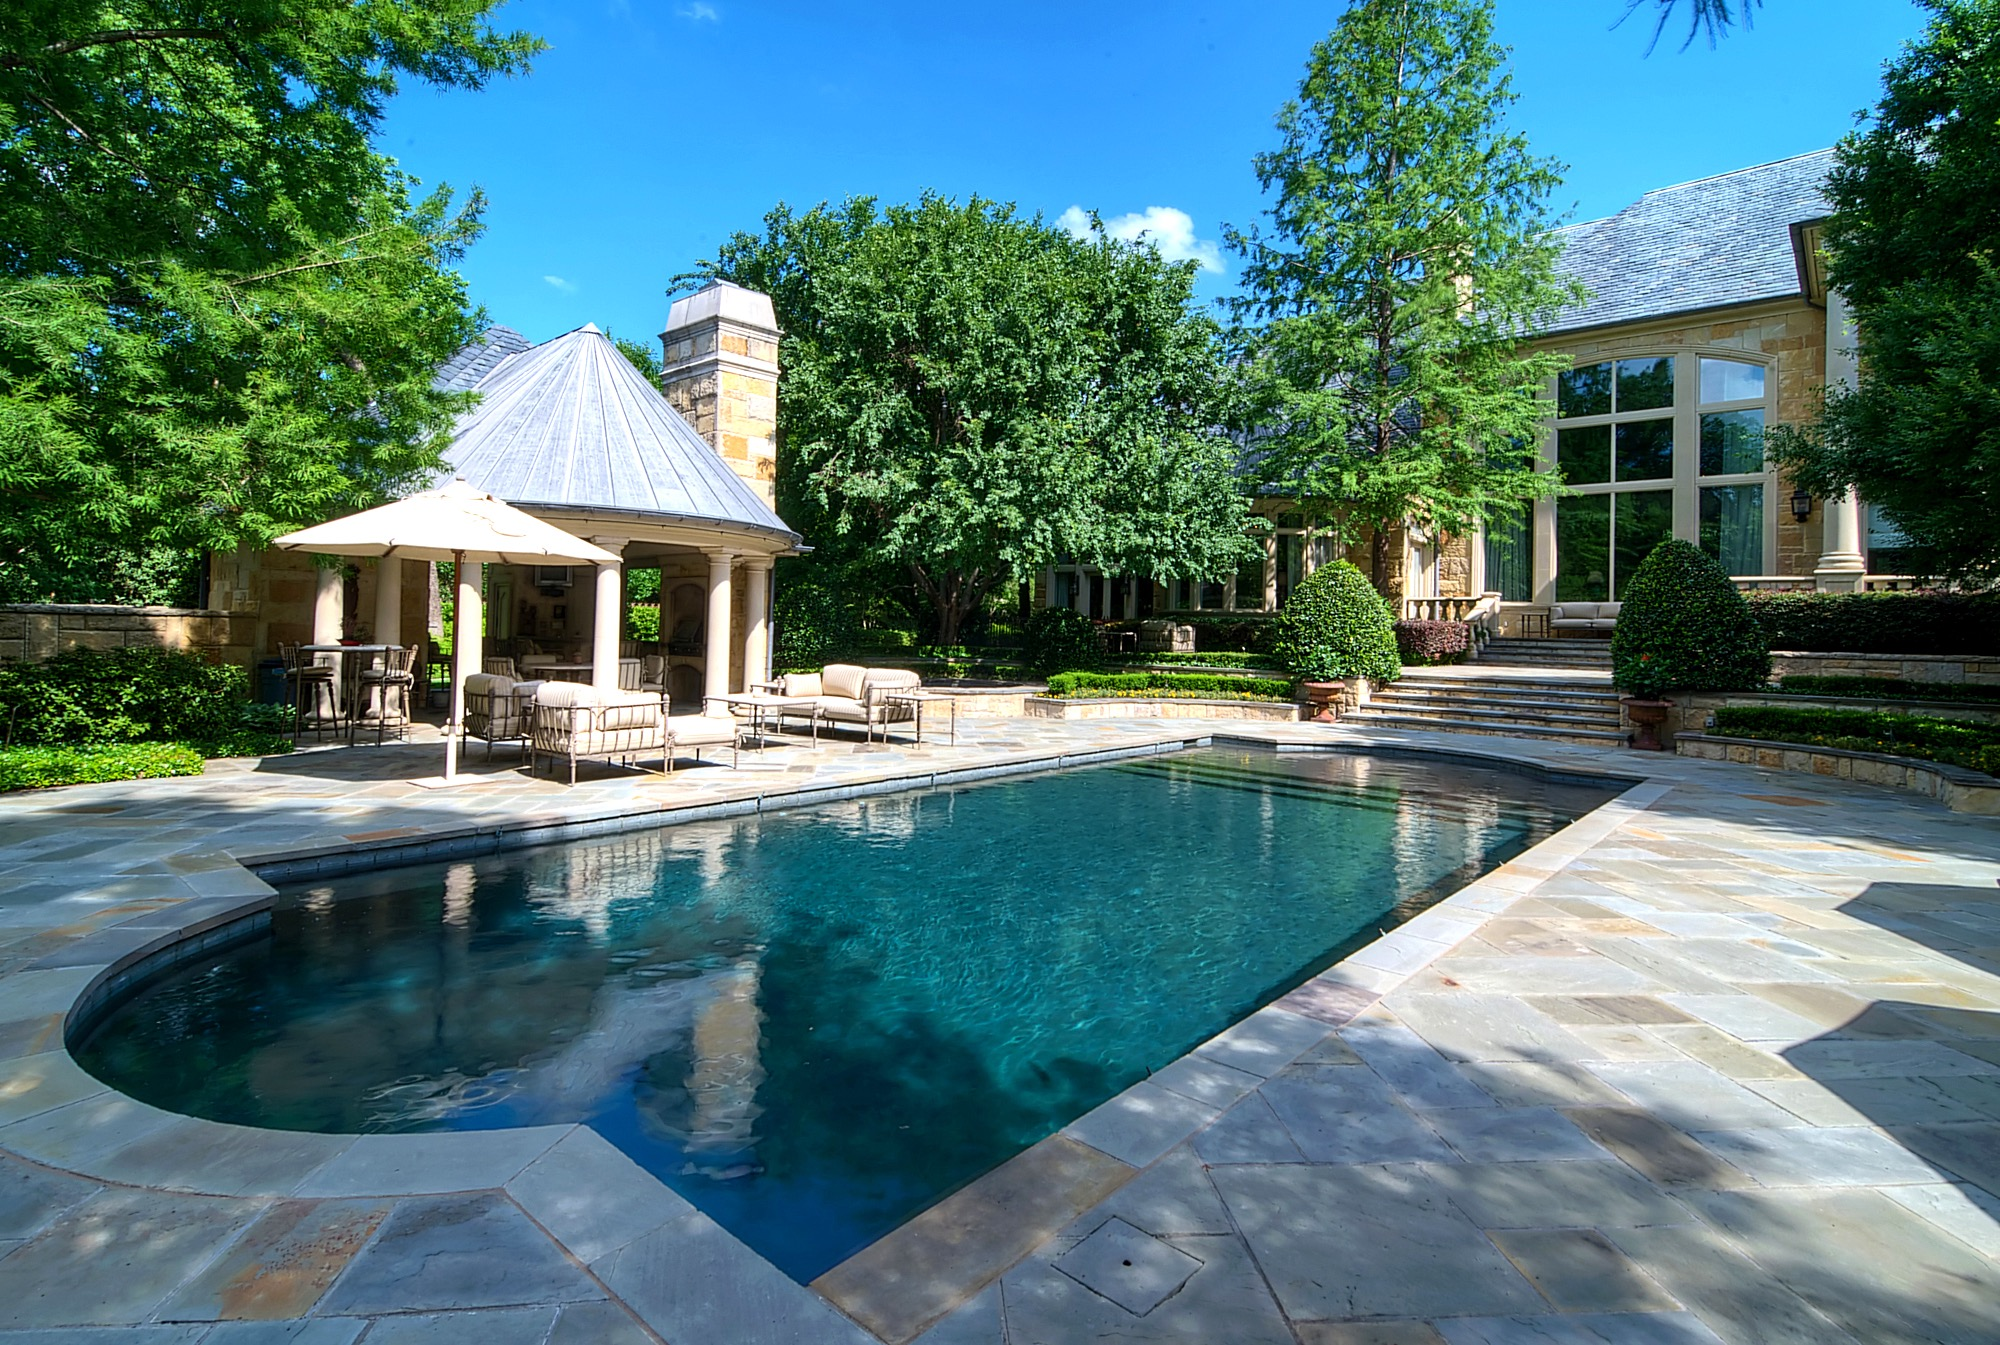 Modern Backyard And Swimming Pool Landscape (View 15 of 30)